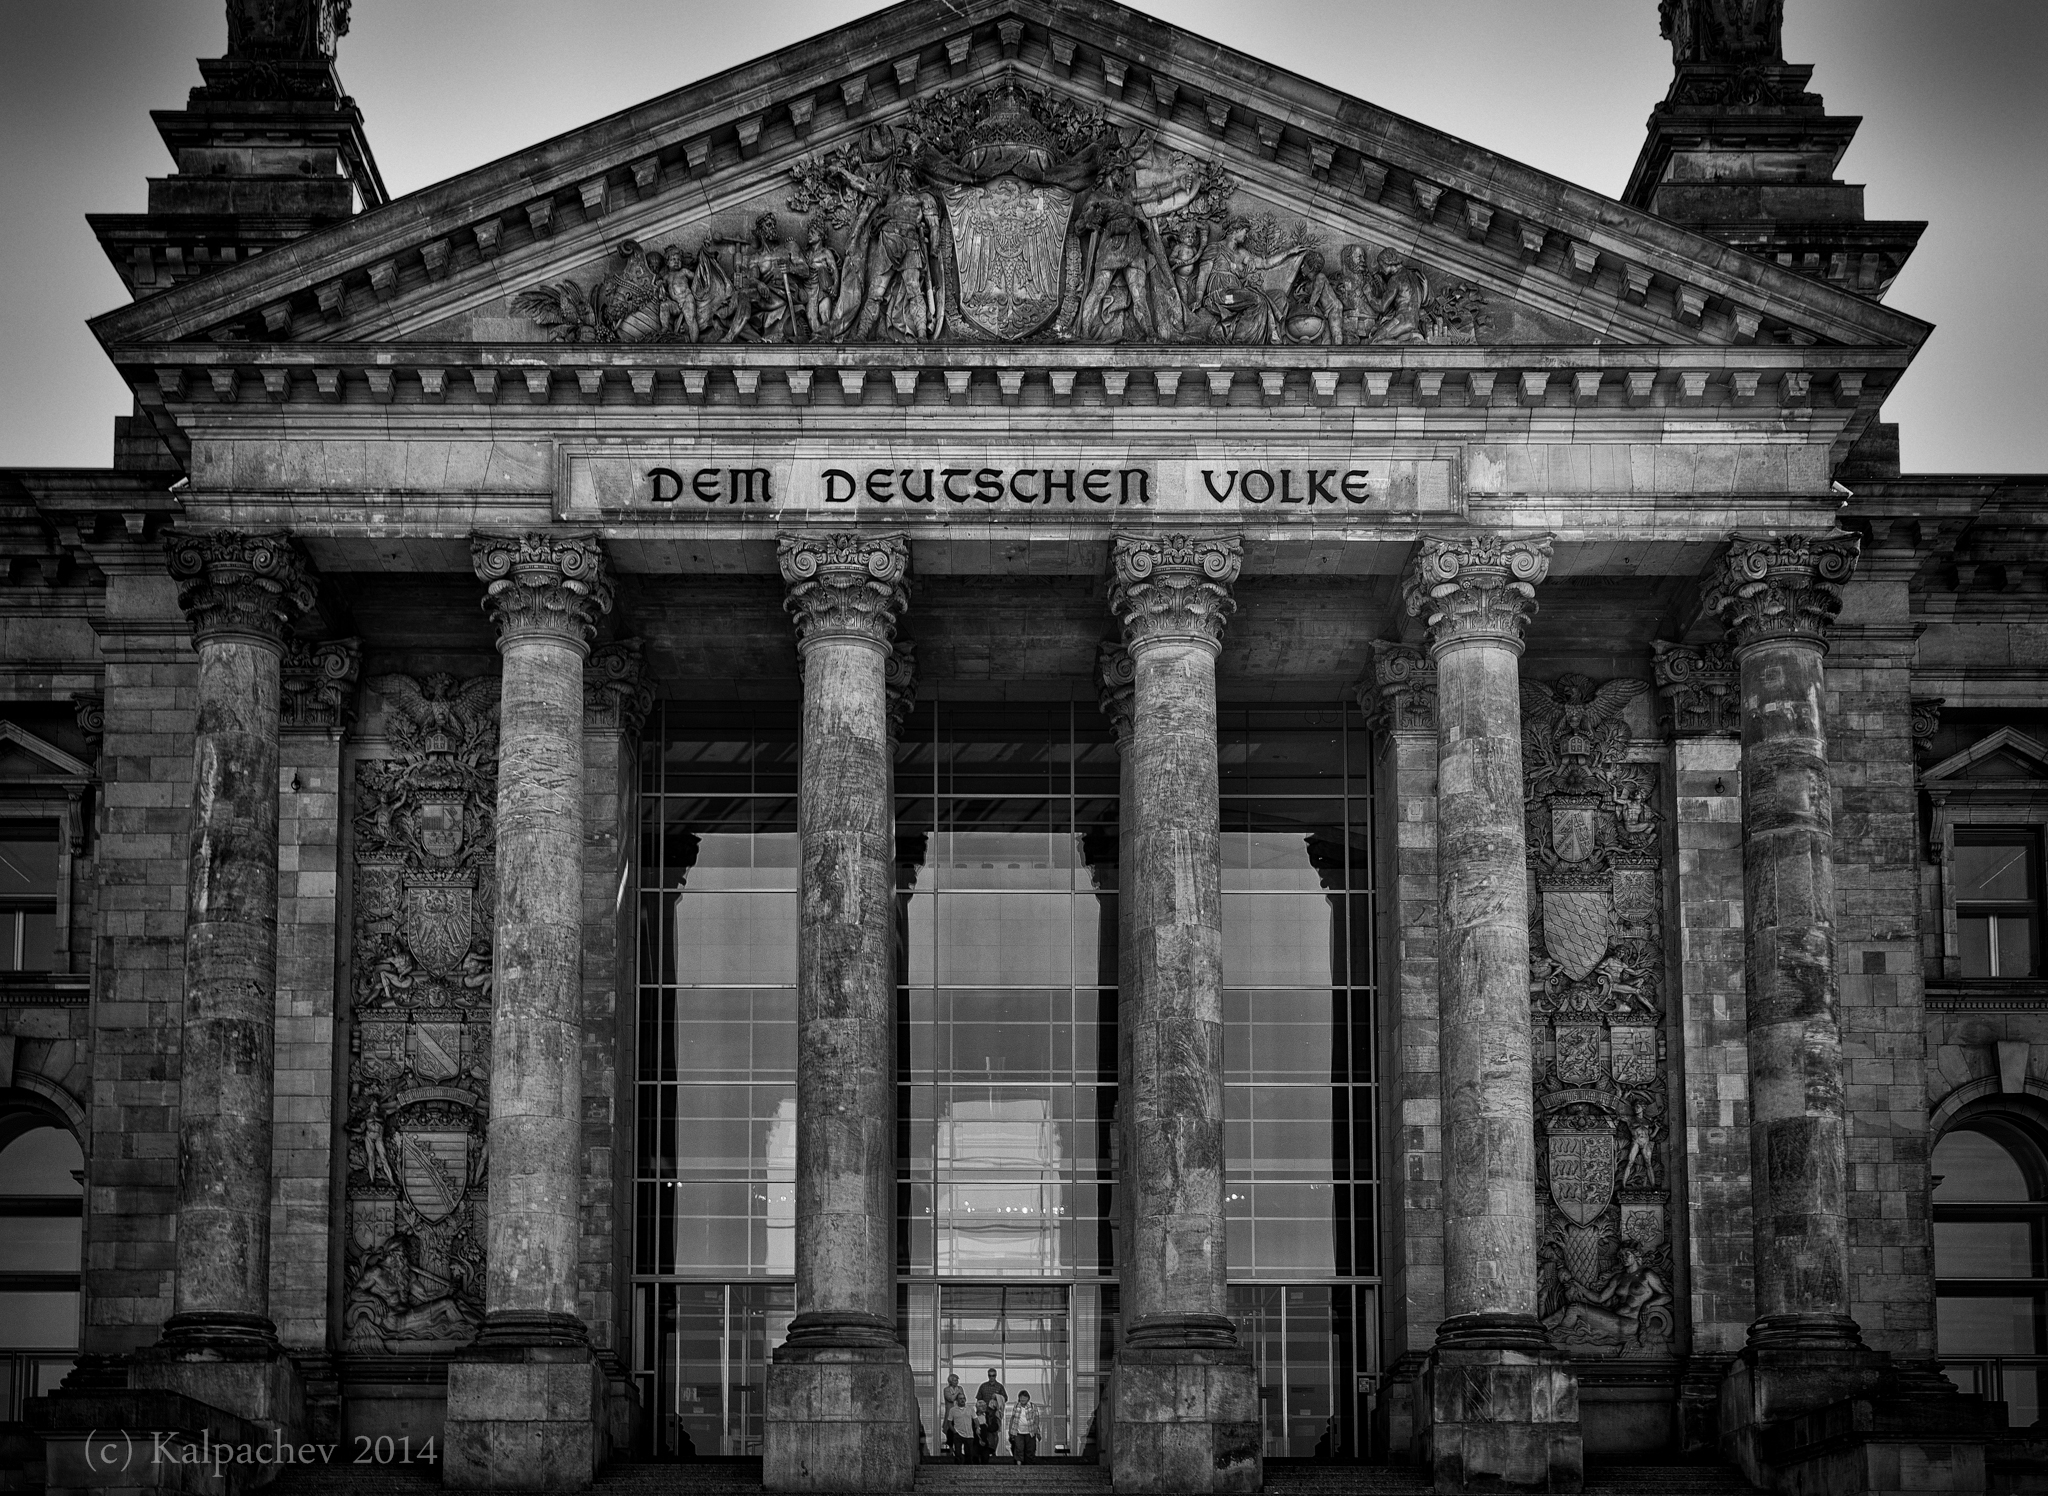 The Reichstag, Berlin, Germany  Photo taken by my on my motorcycle tour around Europe, September 2014